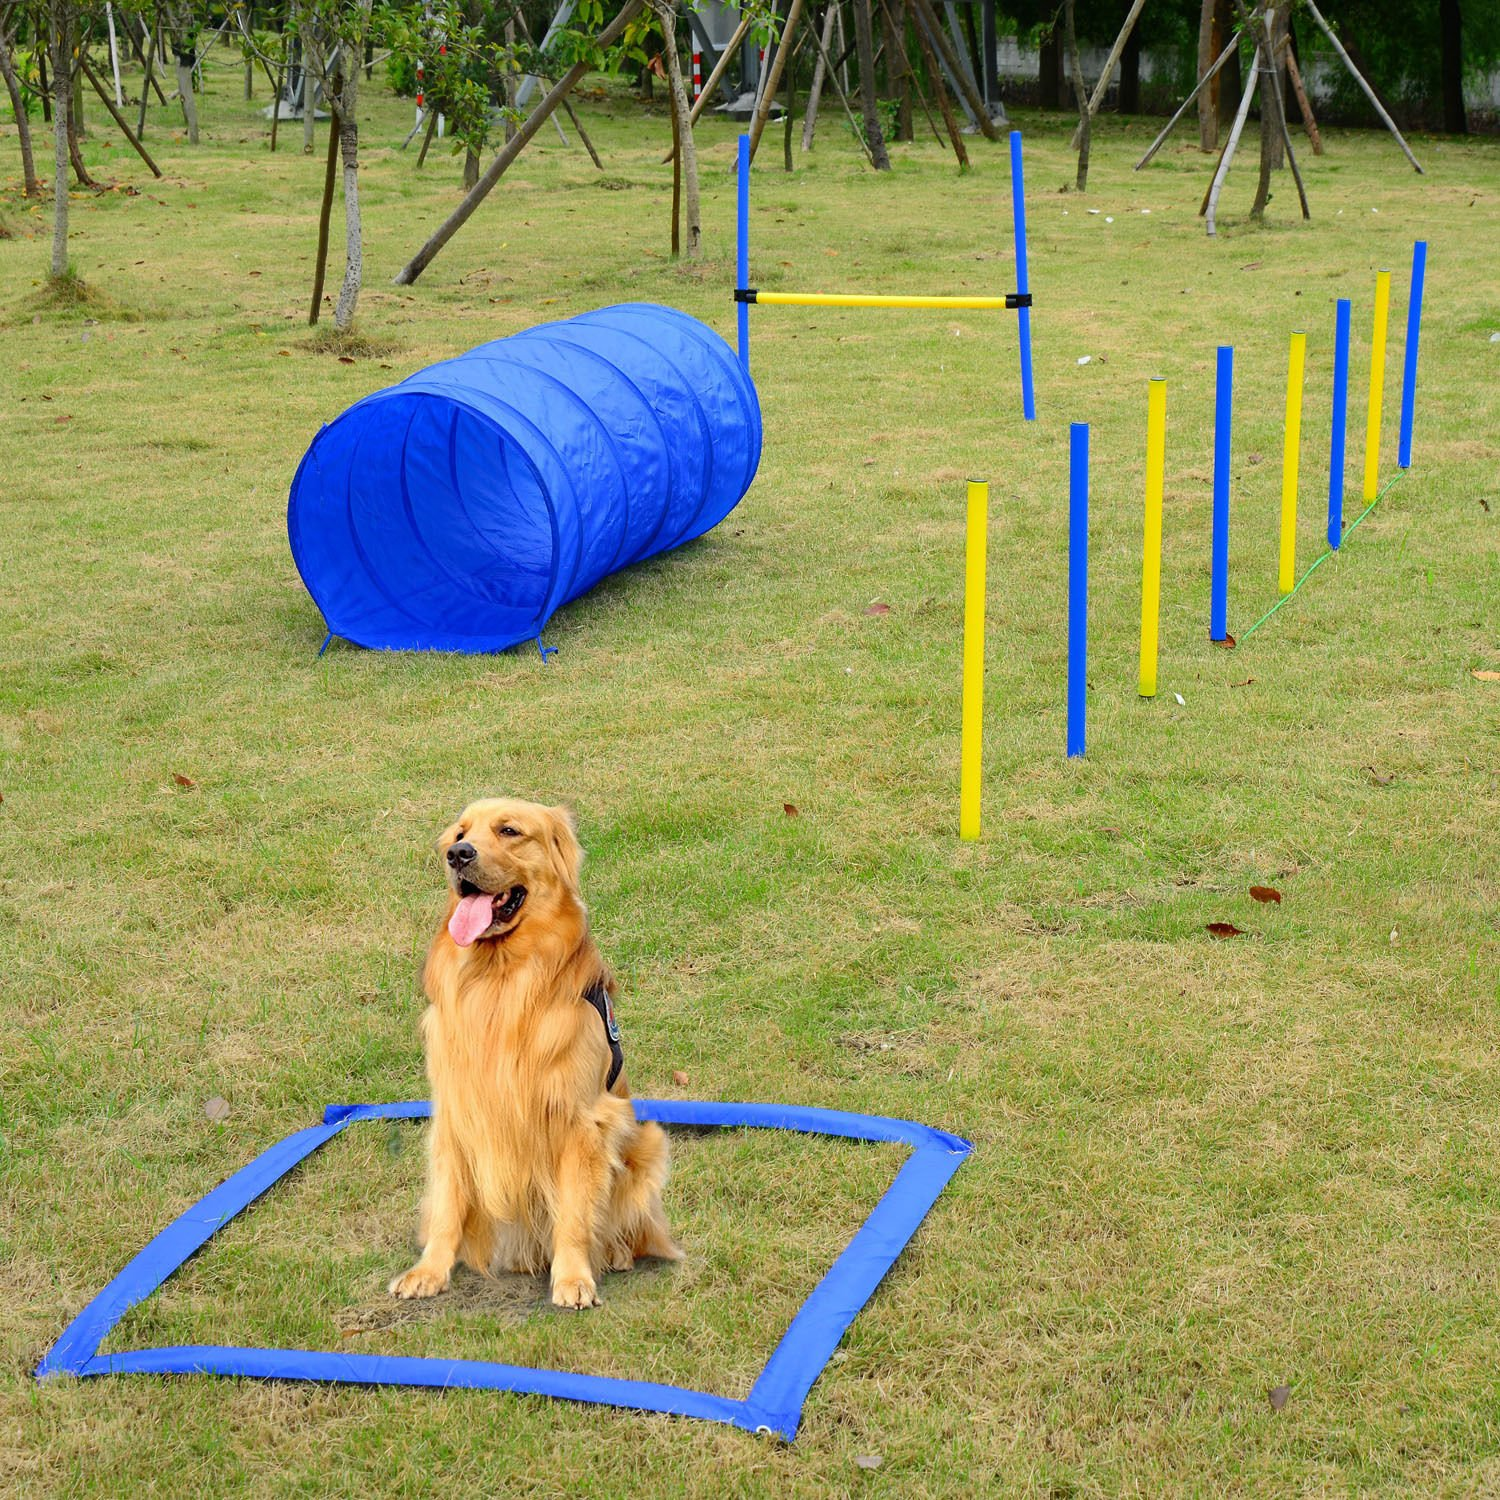 Festnight Outdoor Dog Obstacle Agility Training Exercise Equipment Kit by Festnight